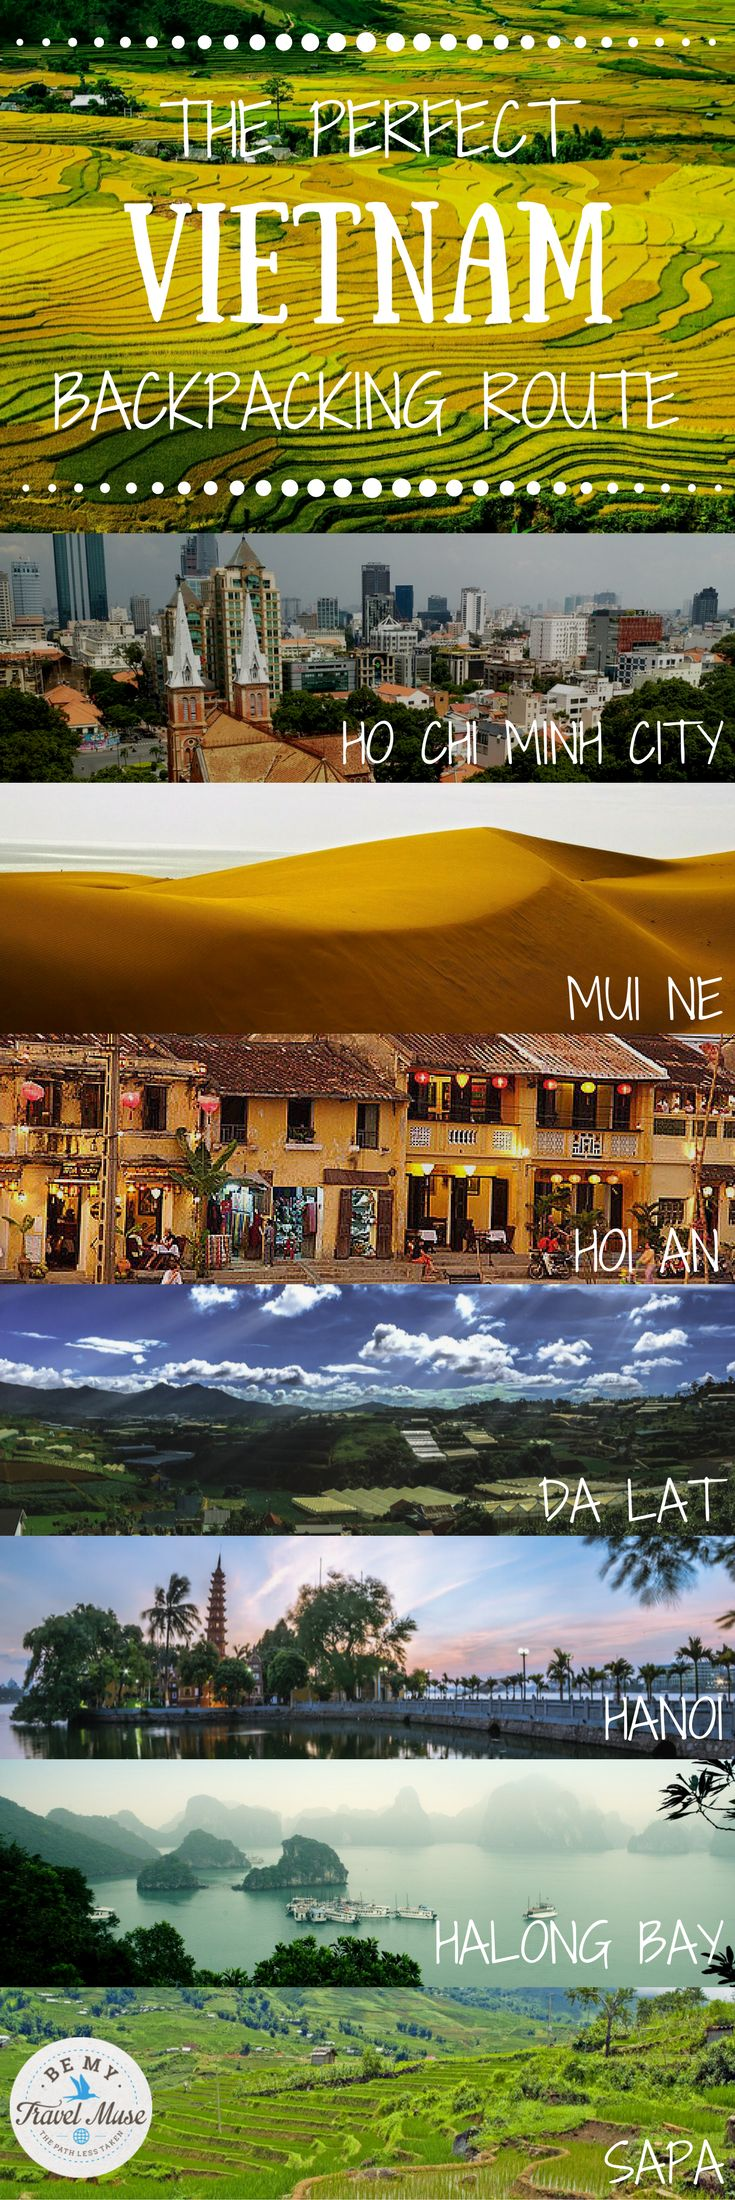 The ultimate backpacking route through Vietnam, including stops in Hanoi, Hoi An...